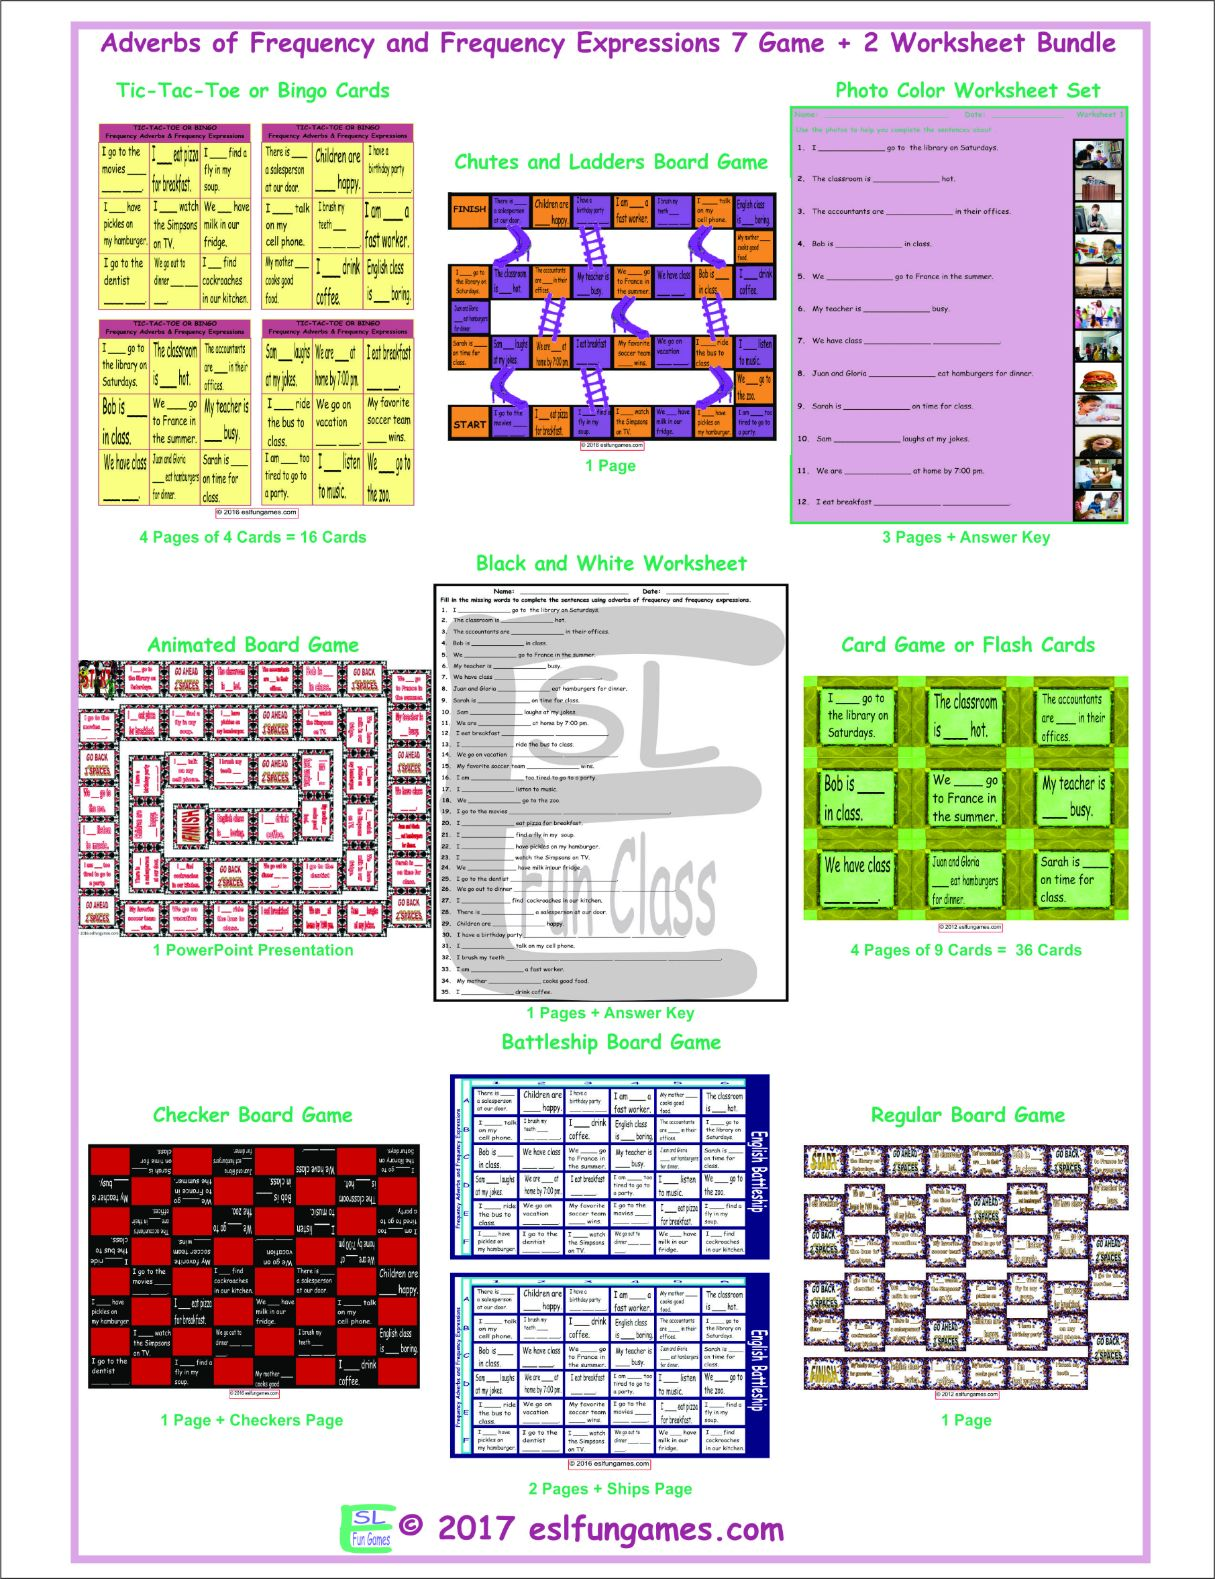 Adverbs Of Frequency And Frequency Expressions 7 Game Plus